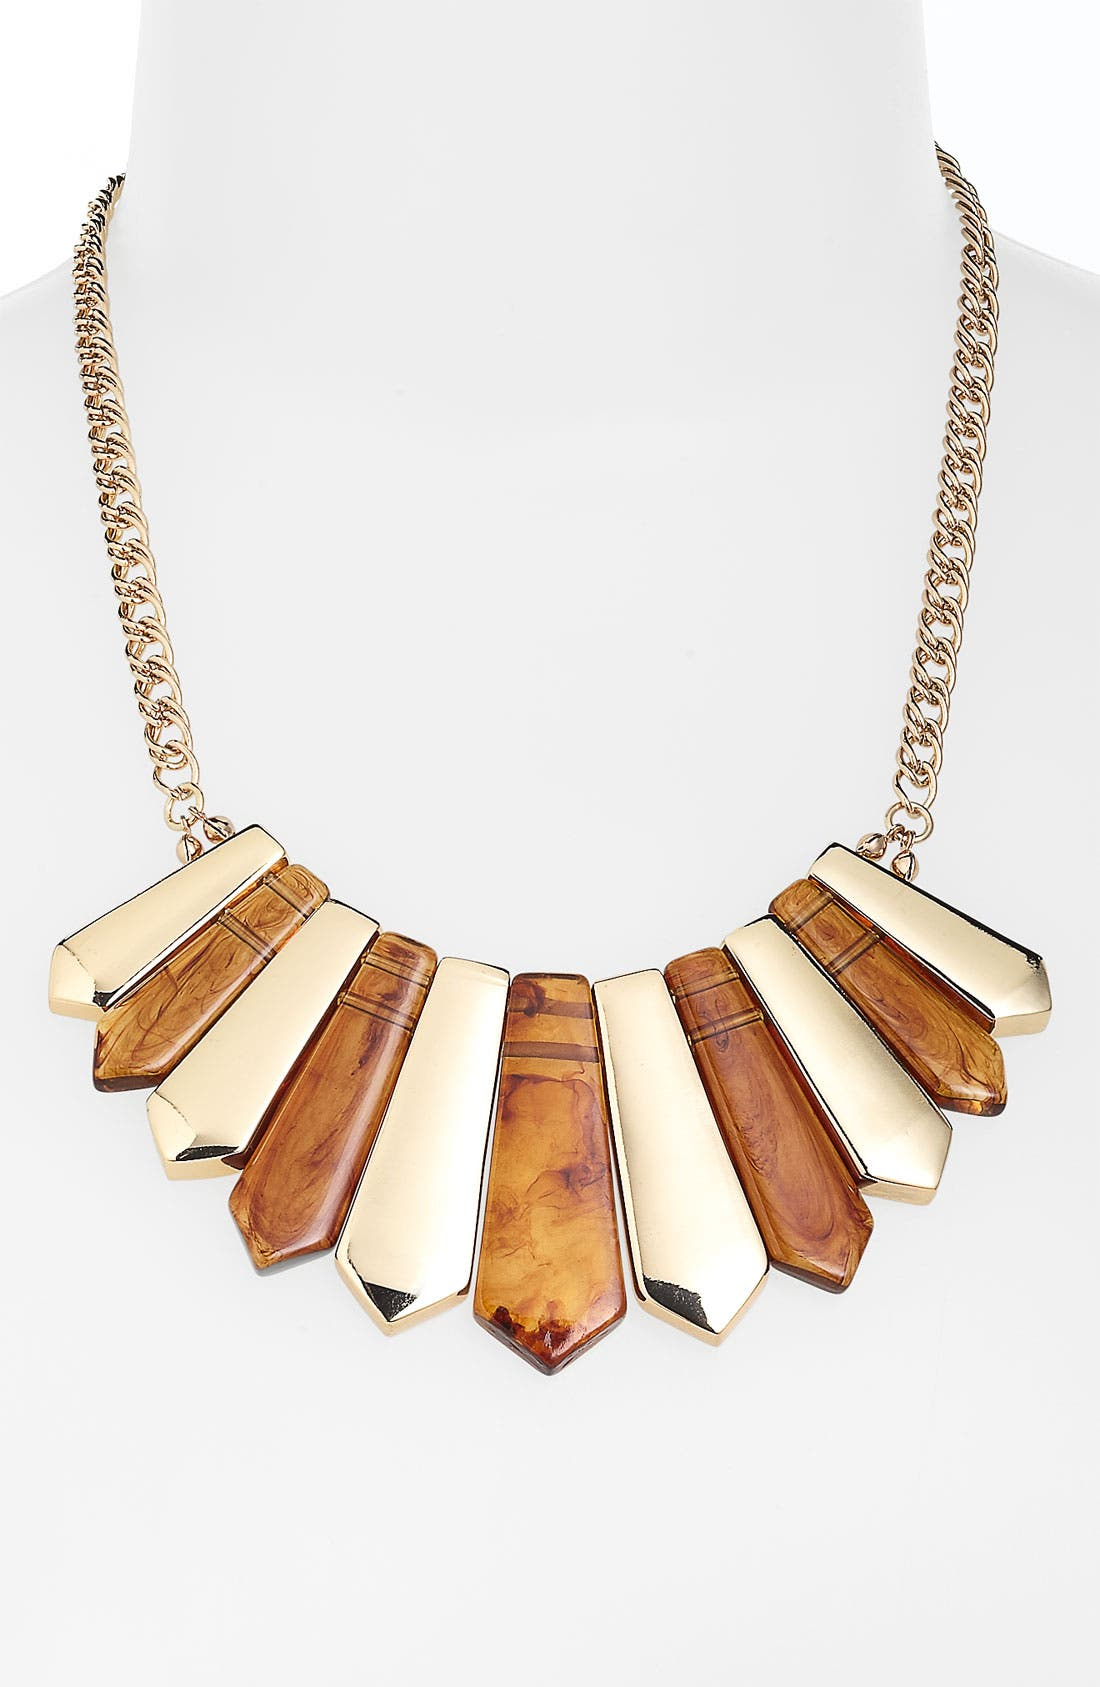 Alternate Image 1 Selected - Spring Street Design Group Resin & Metal Necklace